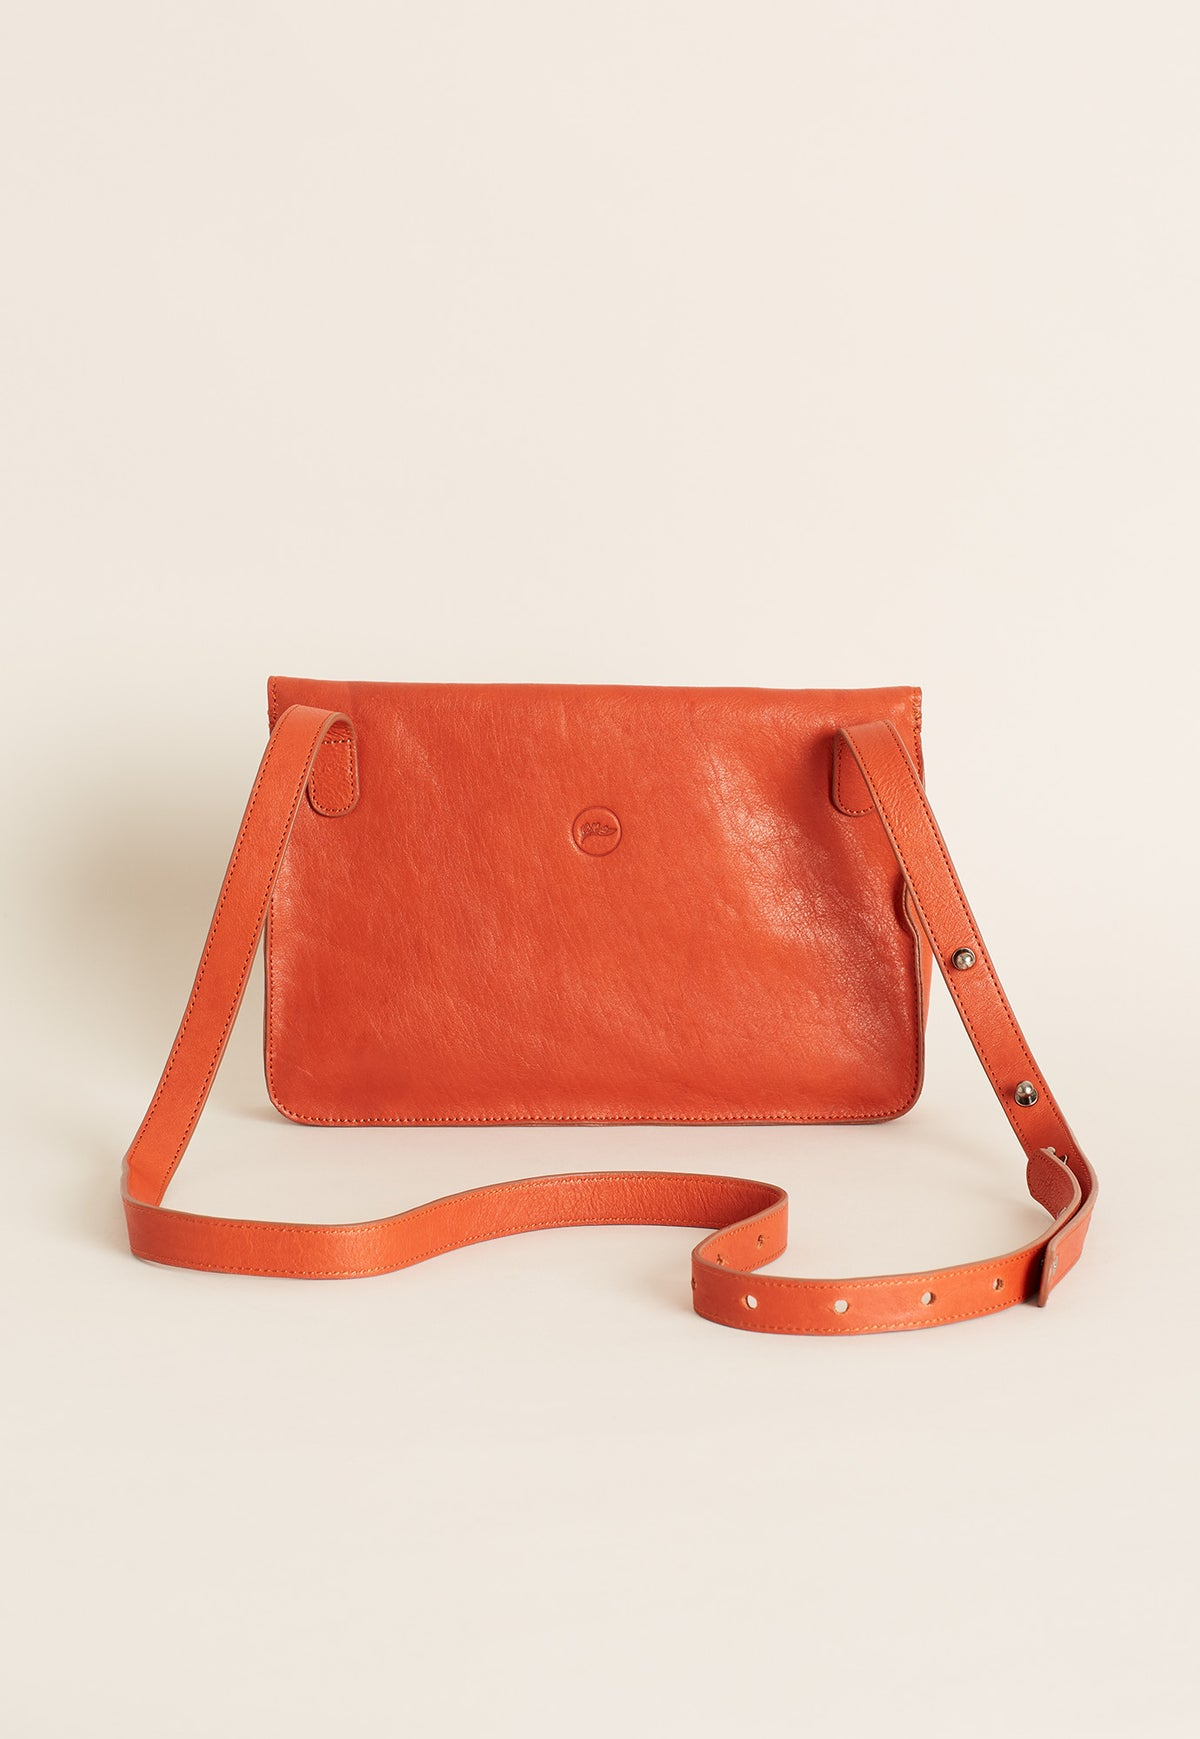 Flora Bag - Russet Red